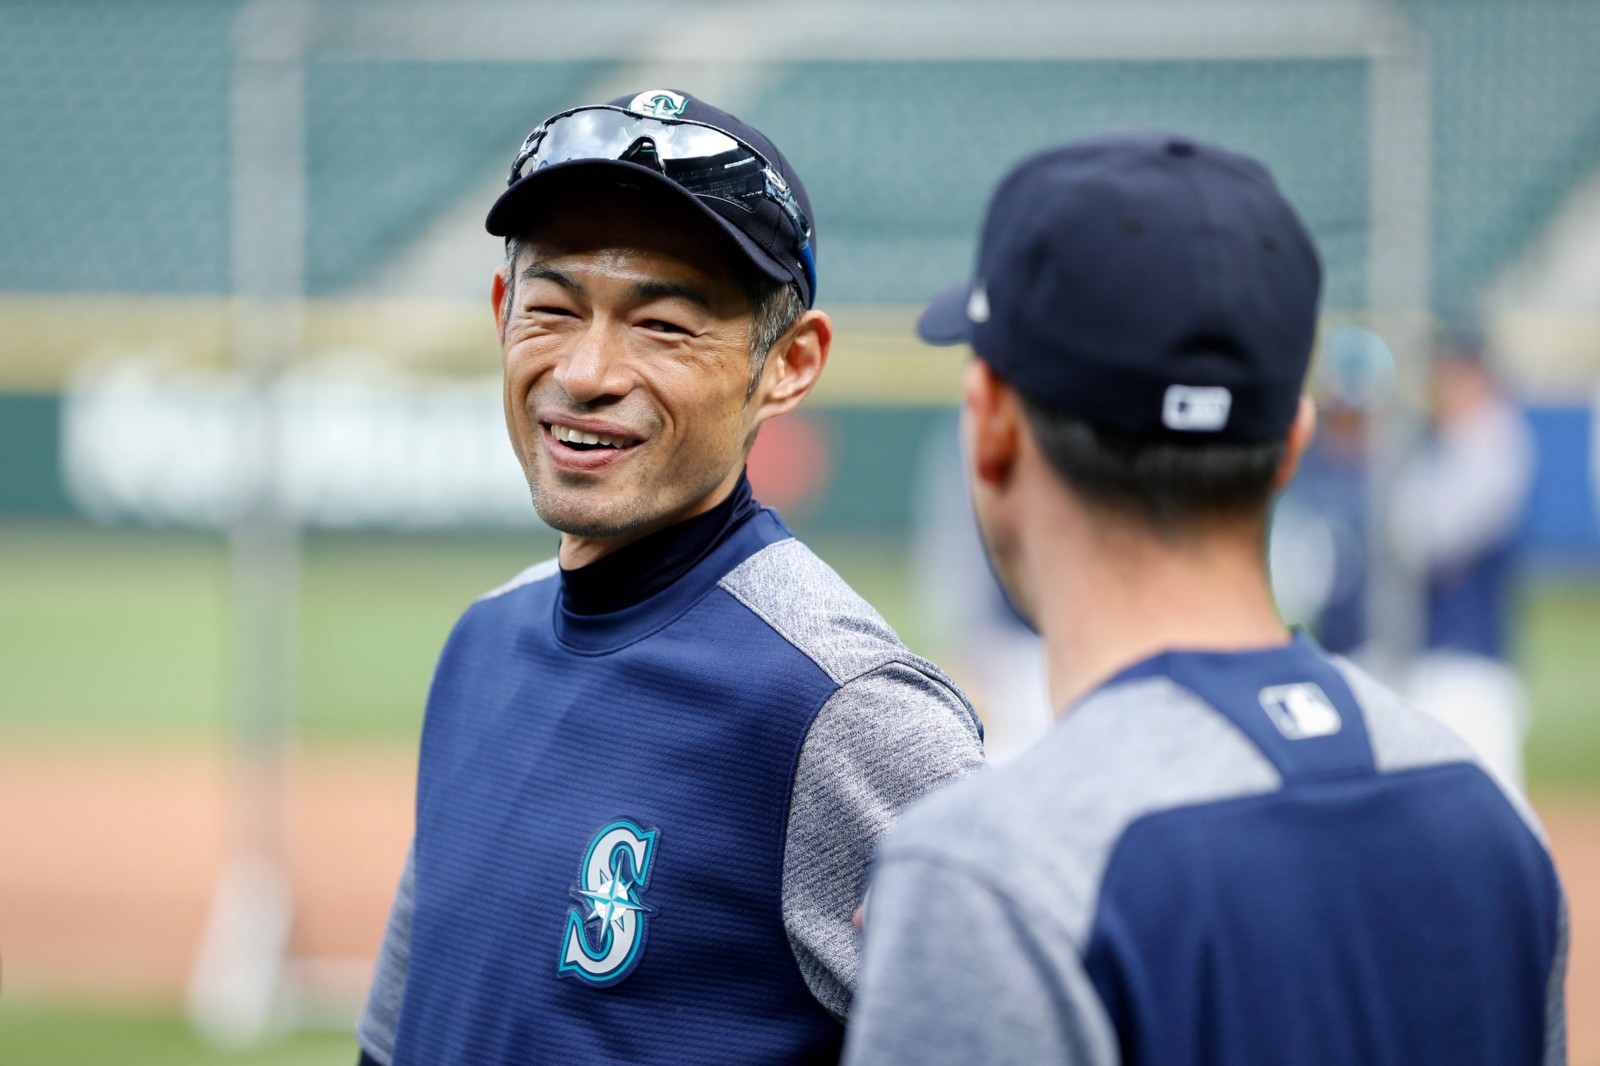 Ichiro Suzuki Joins Seattle Mariners In Front Office Role